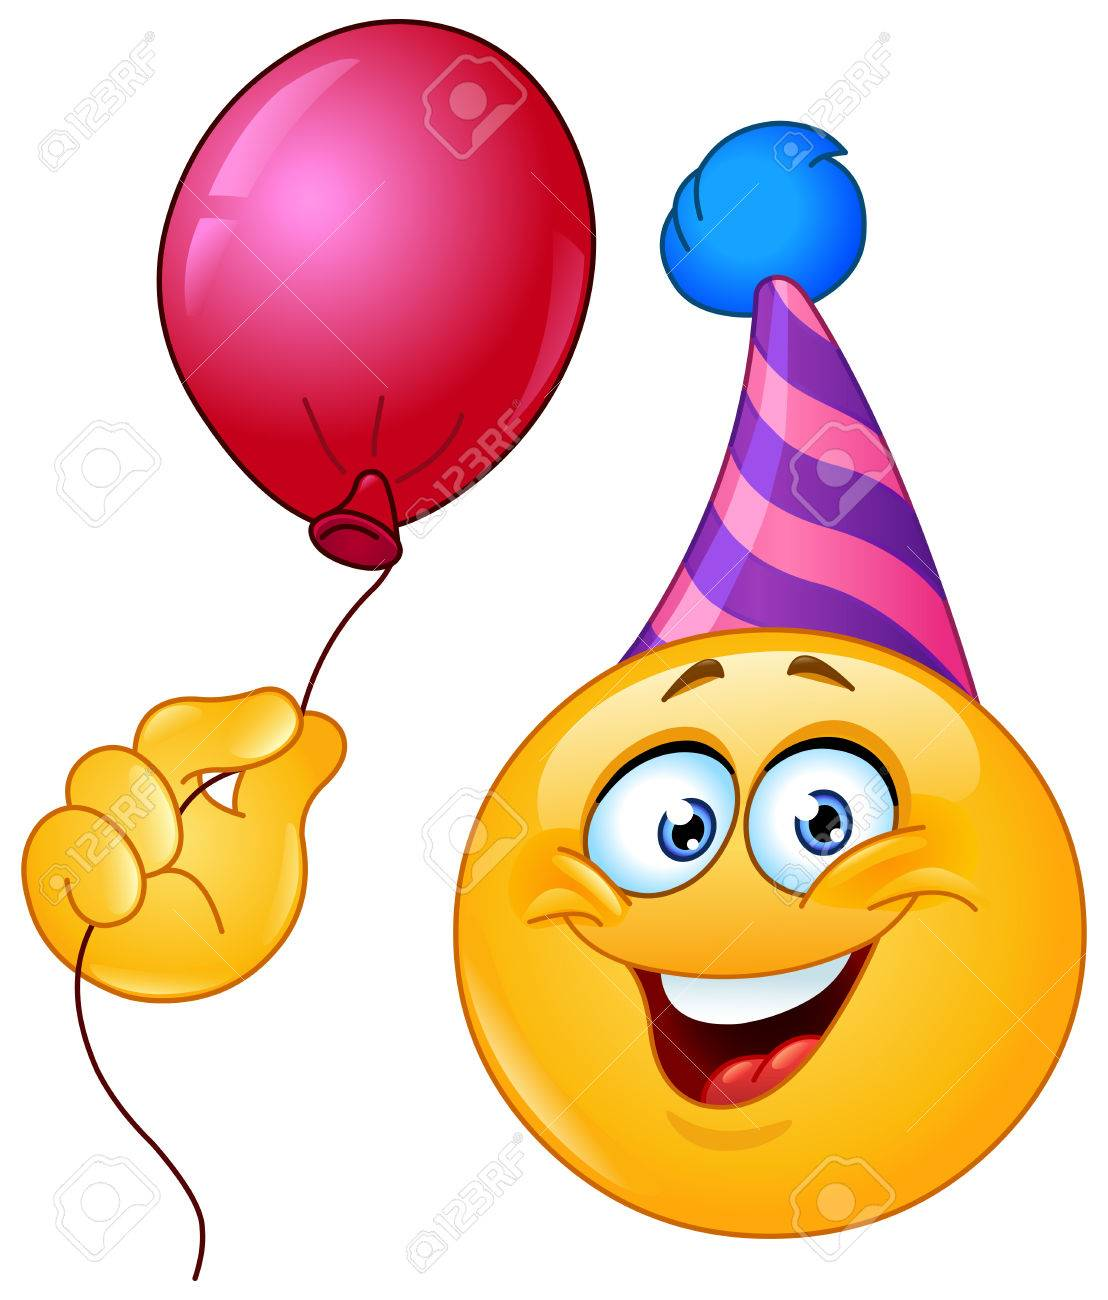 Birthday Emoticon With Party Hat Holding A Balloon Stock Vector